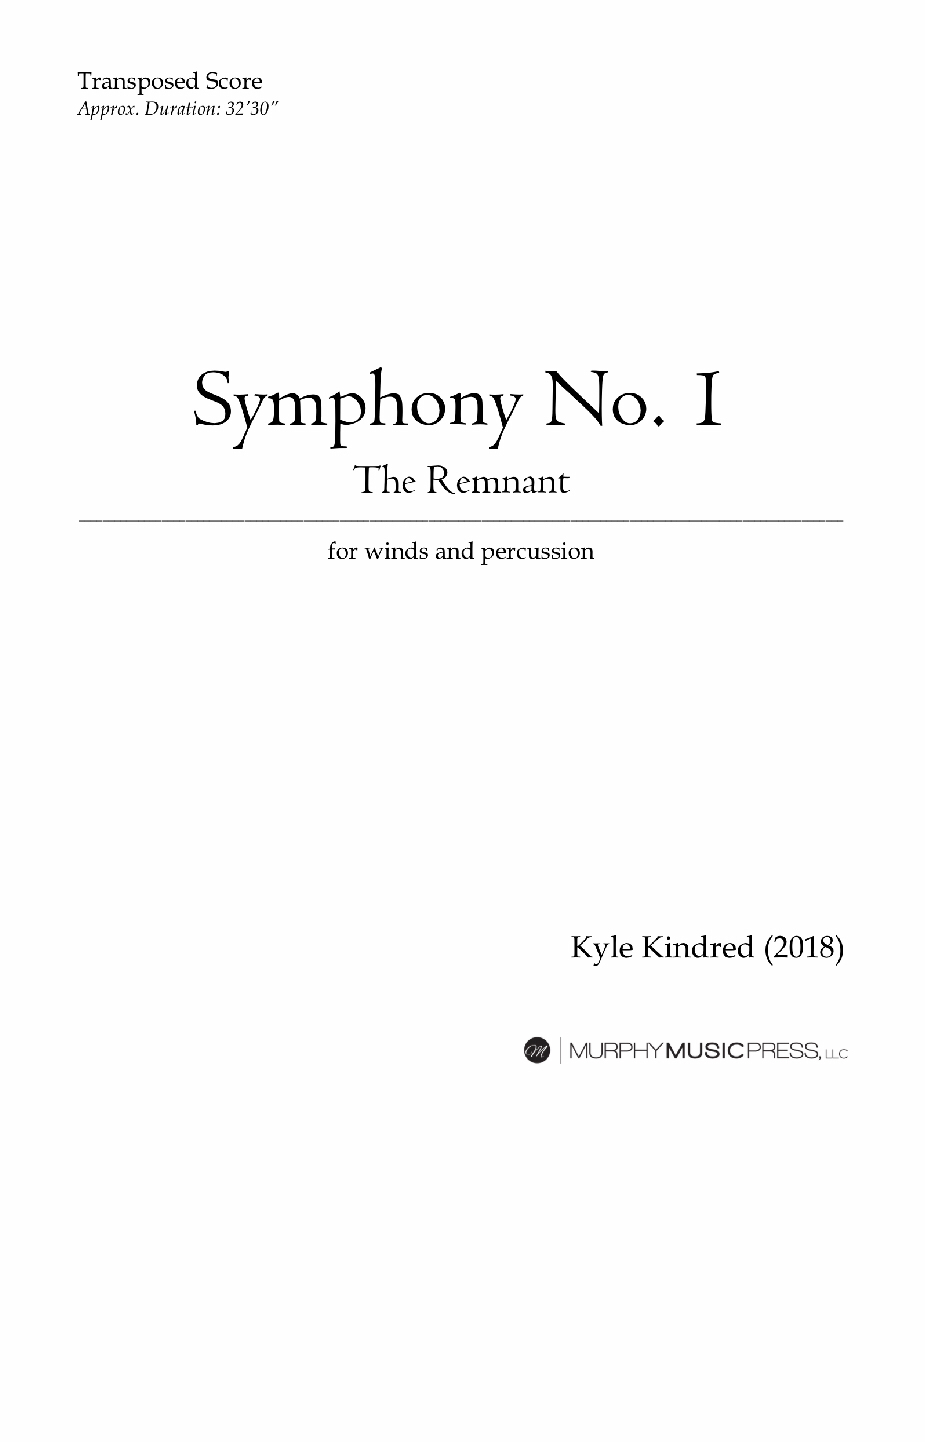 Symphony No. 1, The Remnant (score Only) by Kyle Kindred